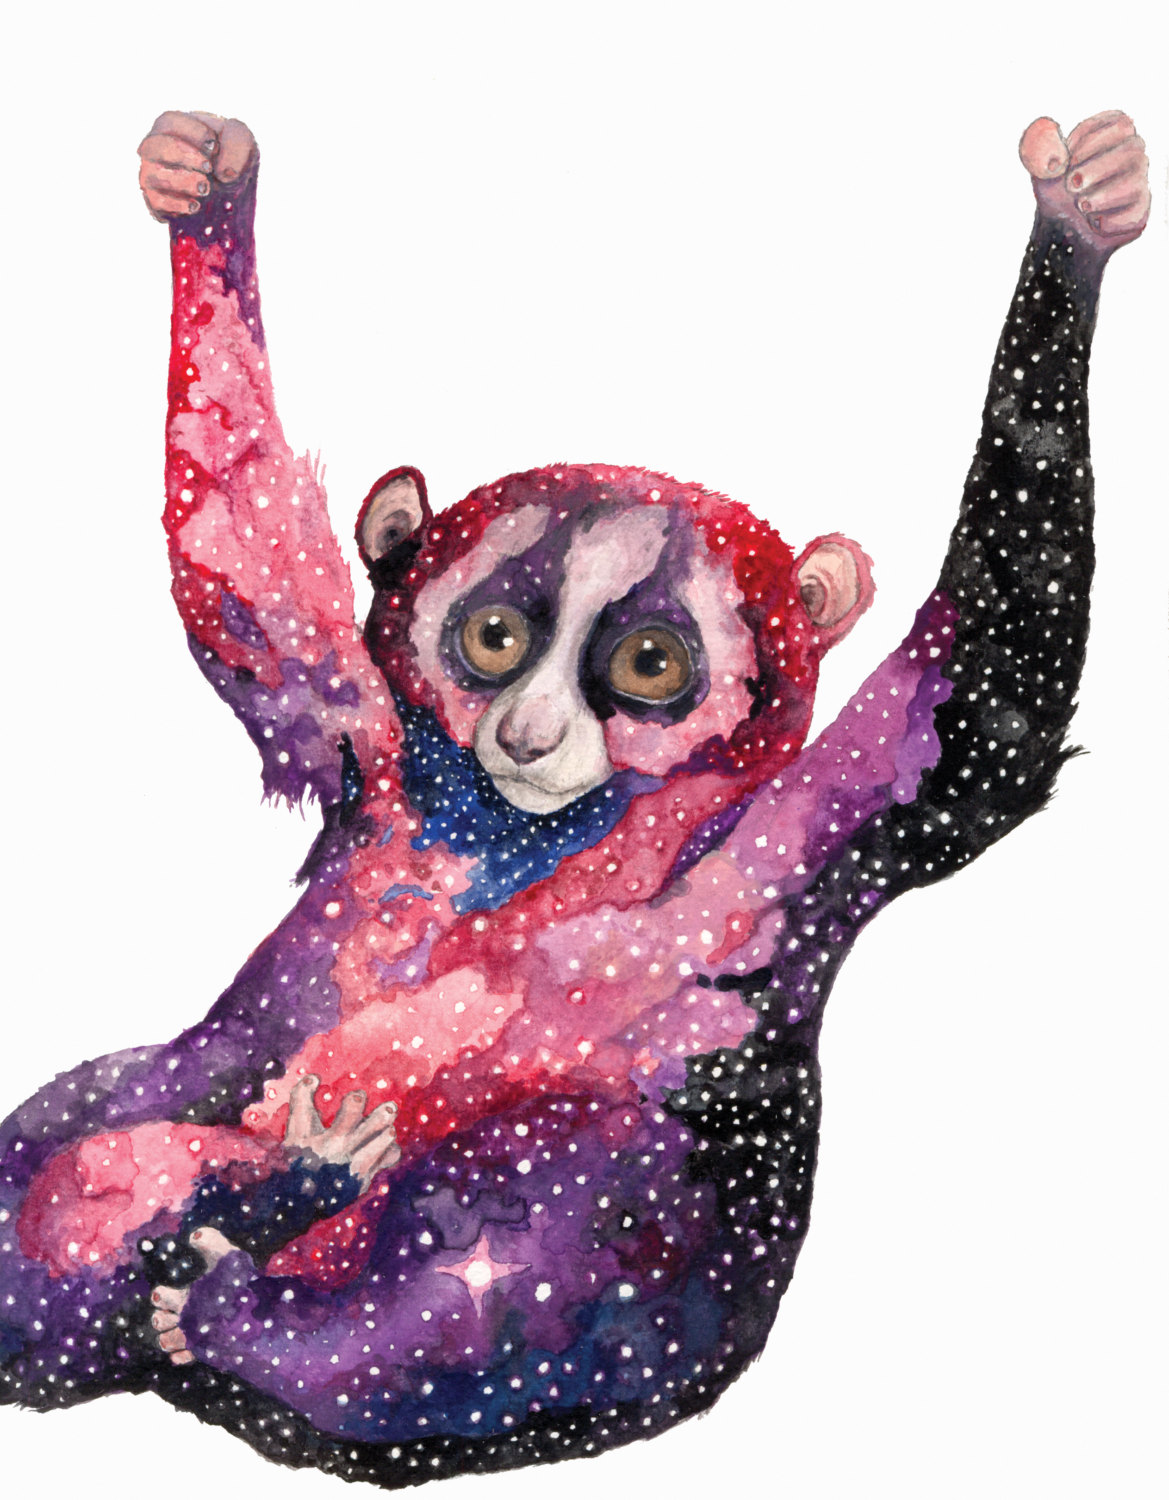 Celestial Ghost Slow Loris - Aaron Wright